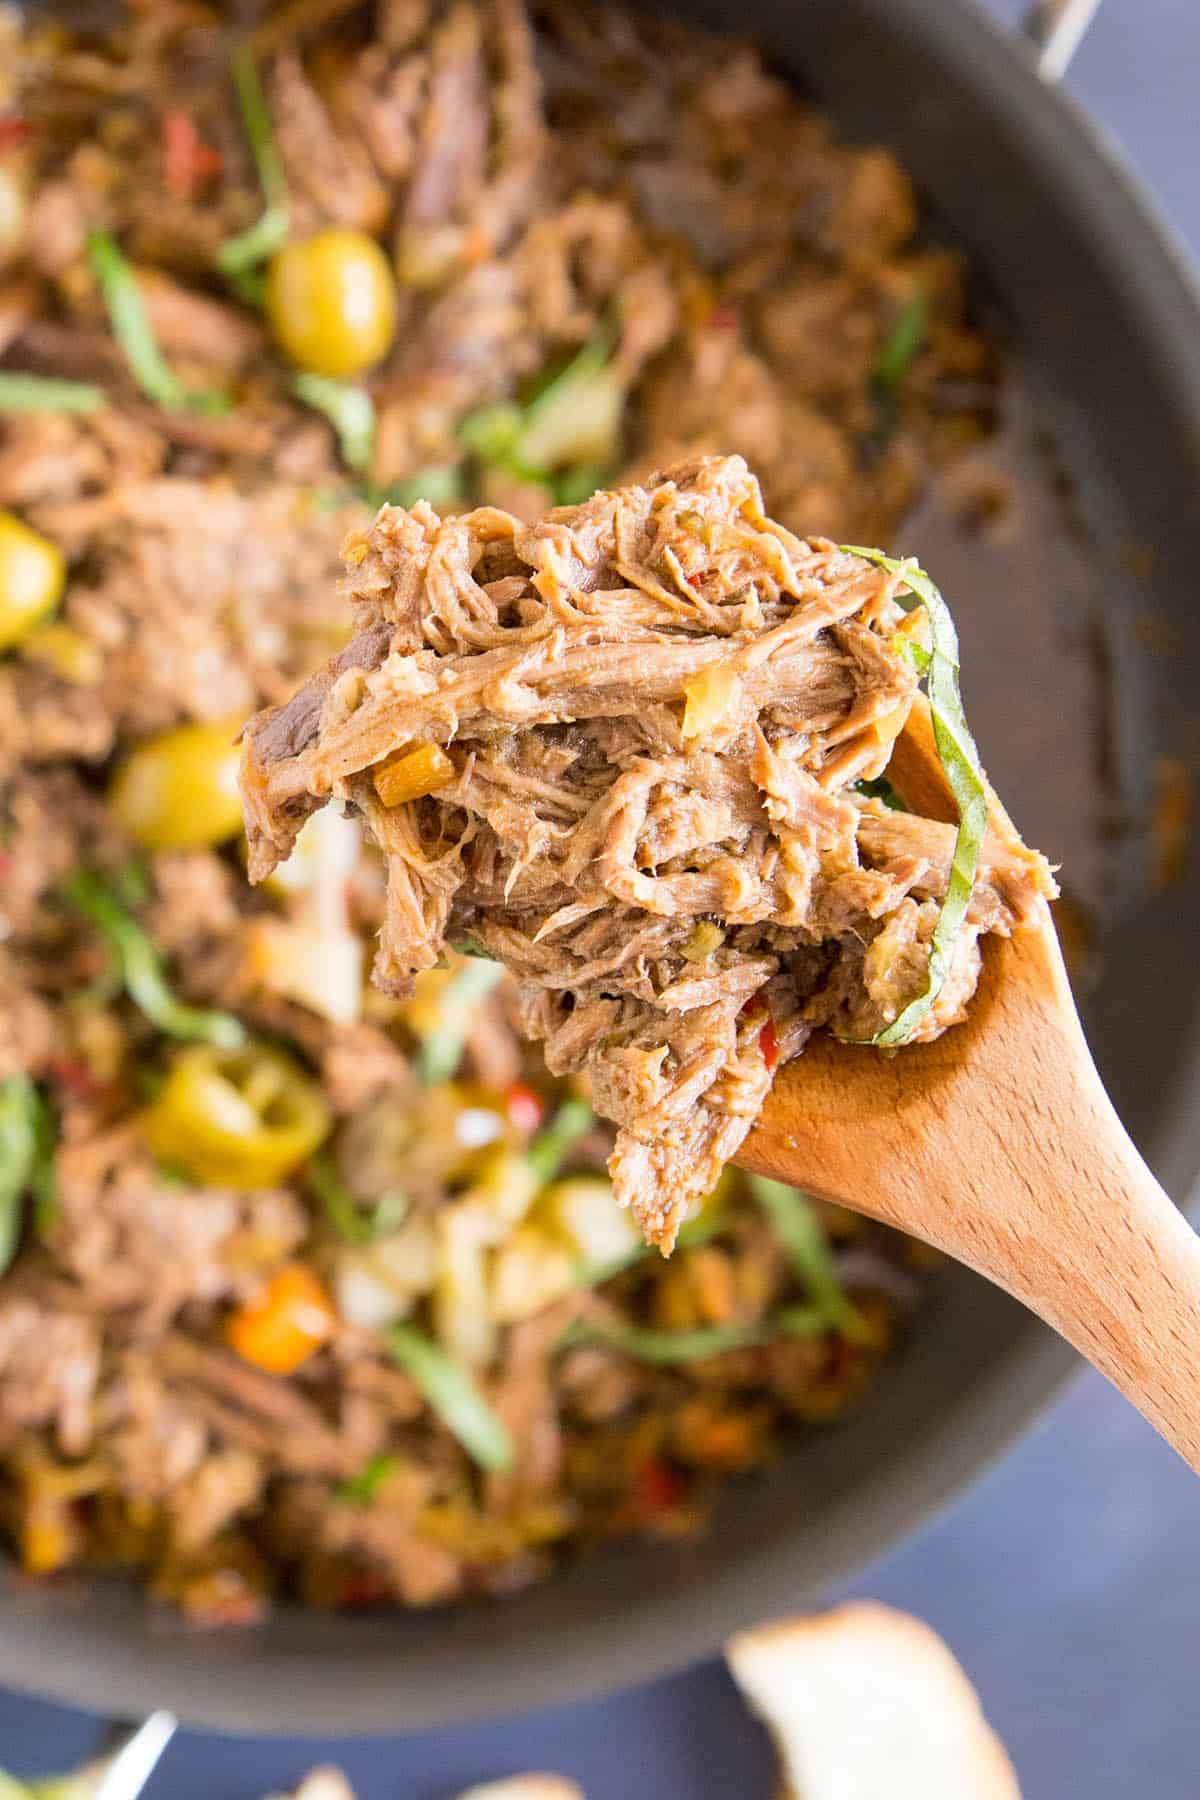 Feisty Italian Slow Cooker Pot Roast - Fork tender beef roast ready for your next meal.